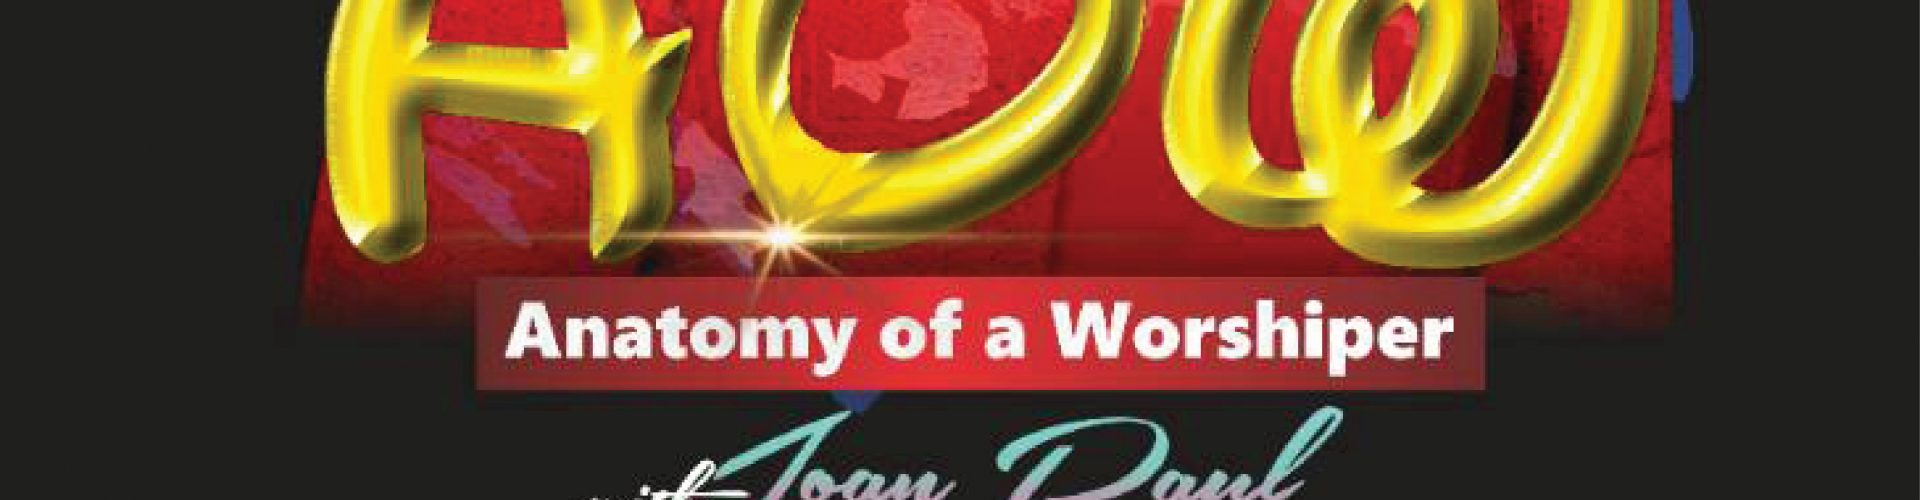 [EVENT]: ANATOMY OF A WORSHIPPER WITH JOAN PAUL | @arkmuzik @joanpaul25